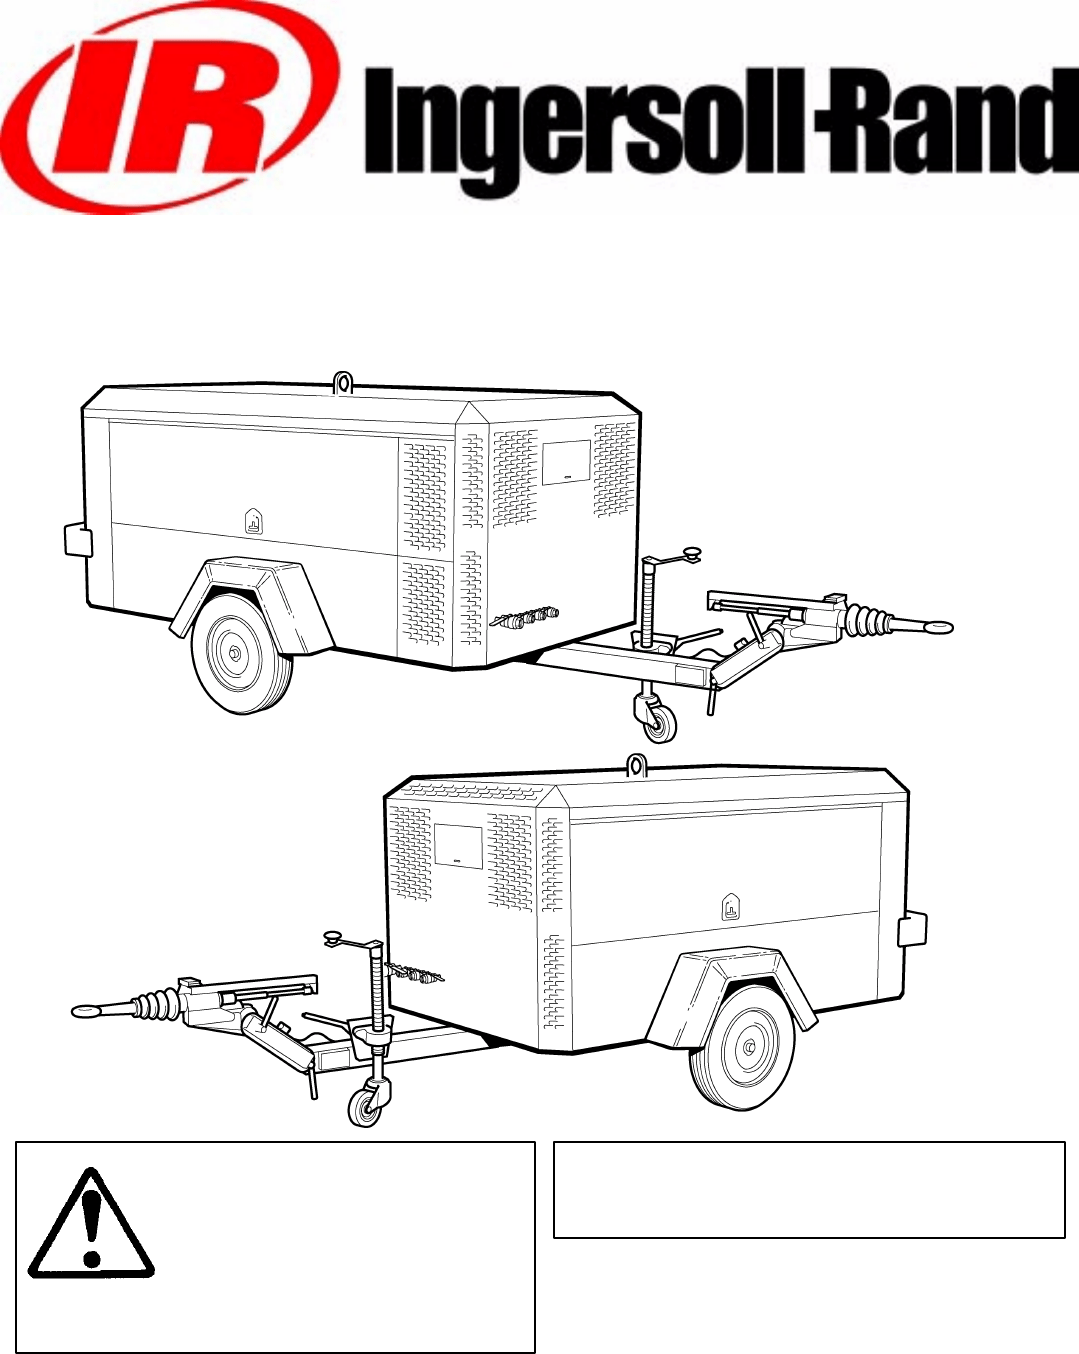 Ingersoll-Rand Air Compressor 7120 User Guide